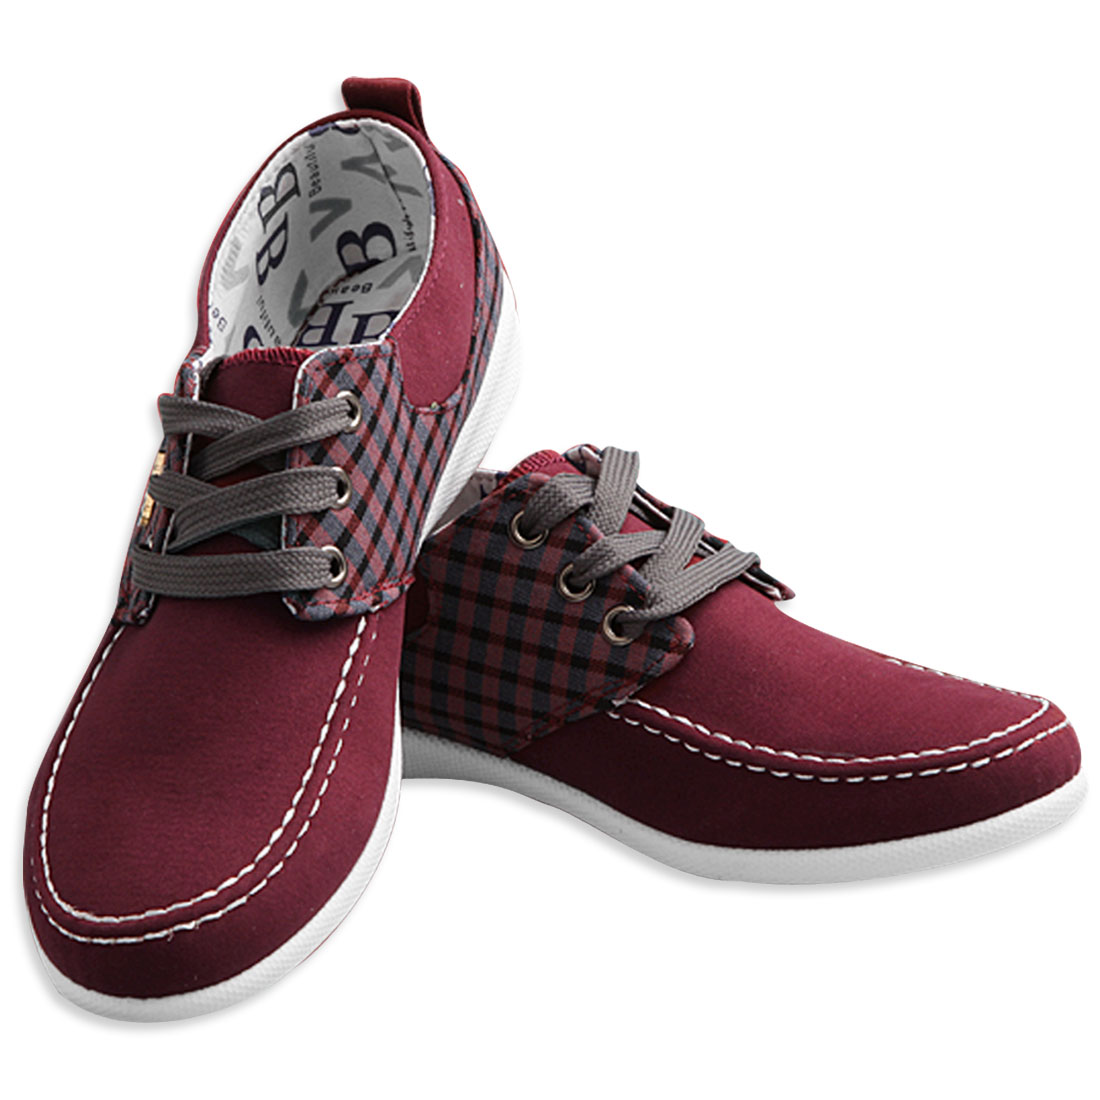 Men Front Lace Closure Letter Decor Canvas Shoes Burgundy US Size 10.5